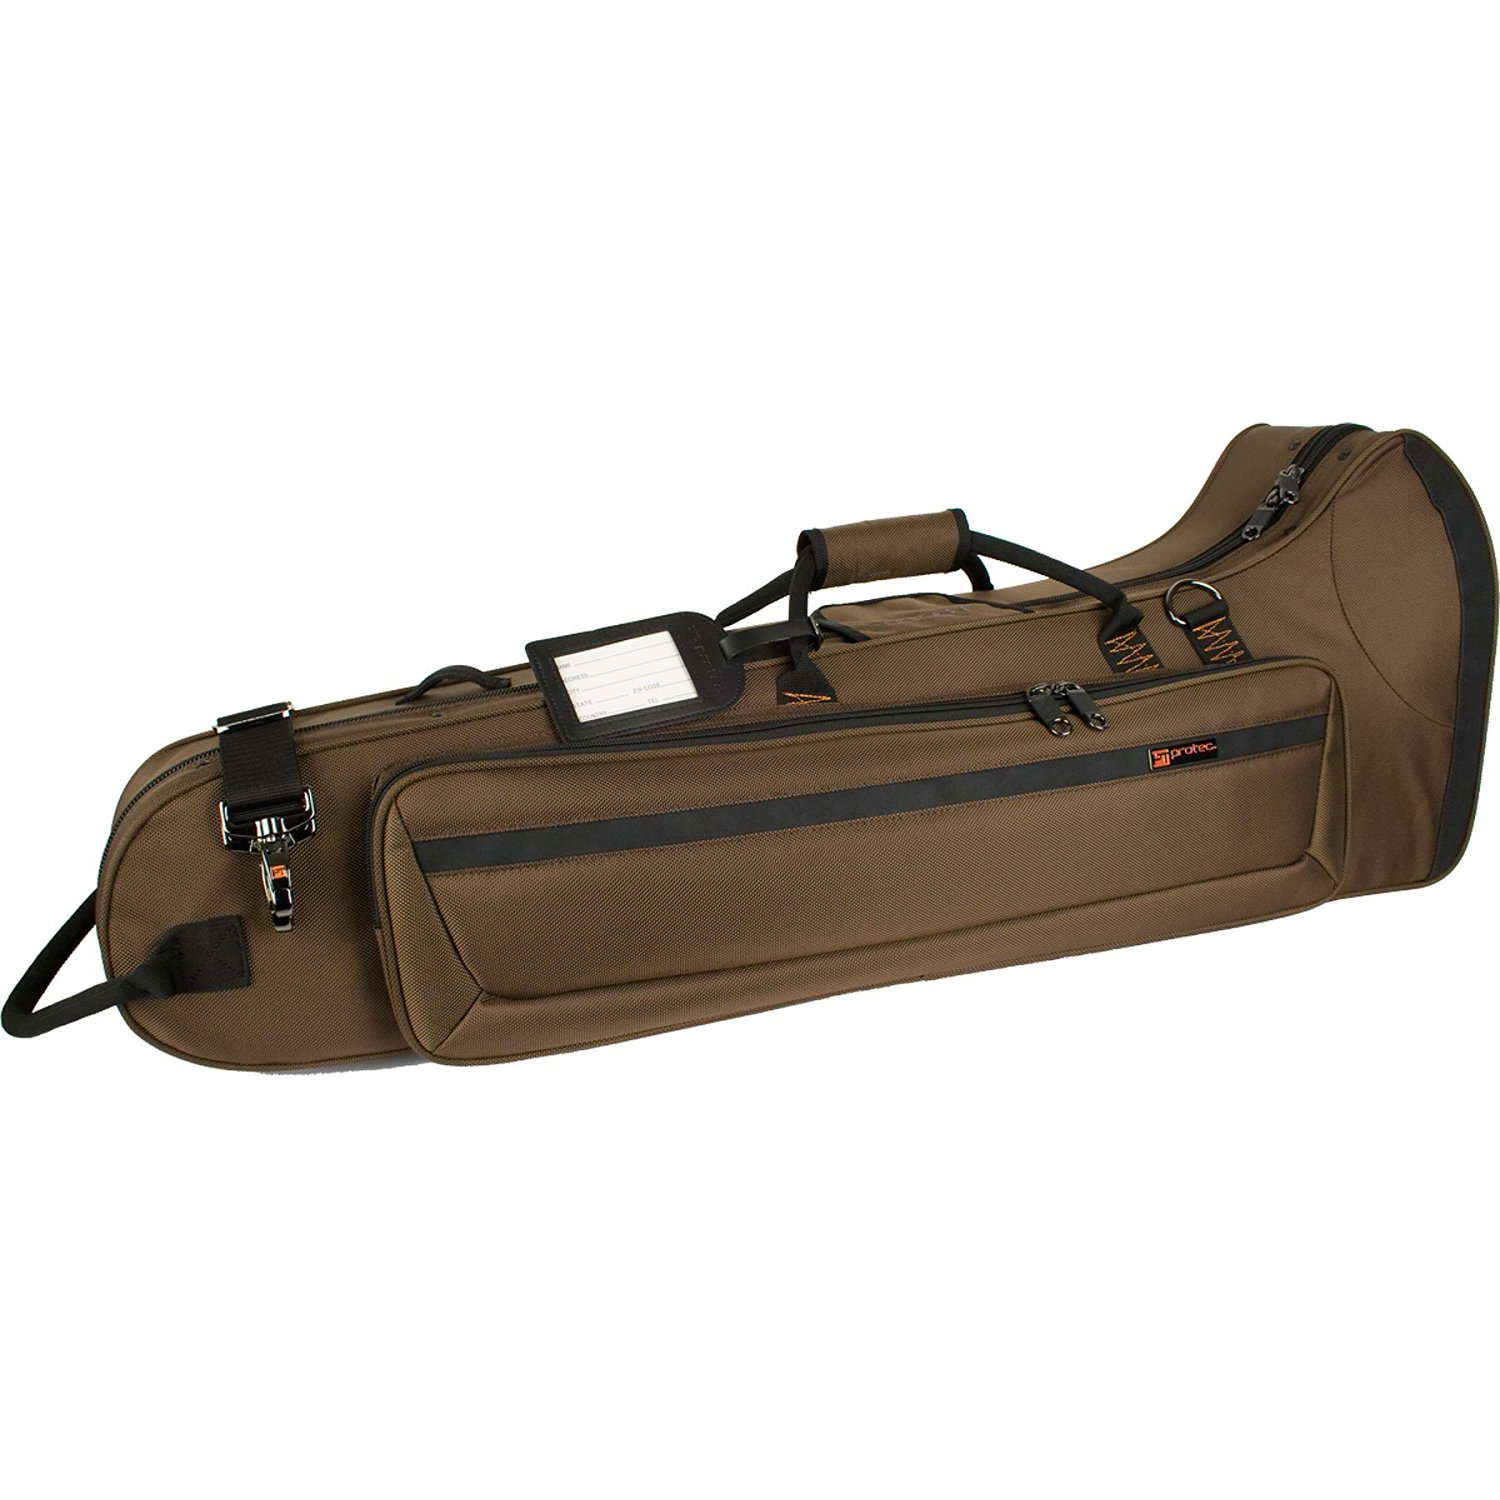 rotect Tenor trombone case   I've owned quite a few different cases.  I have one I like better than this one, but it's 3 times the price!  This is a great case for the money - a little bulky, but protective and well made.